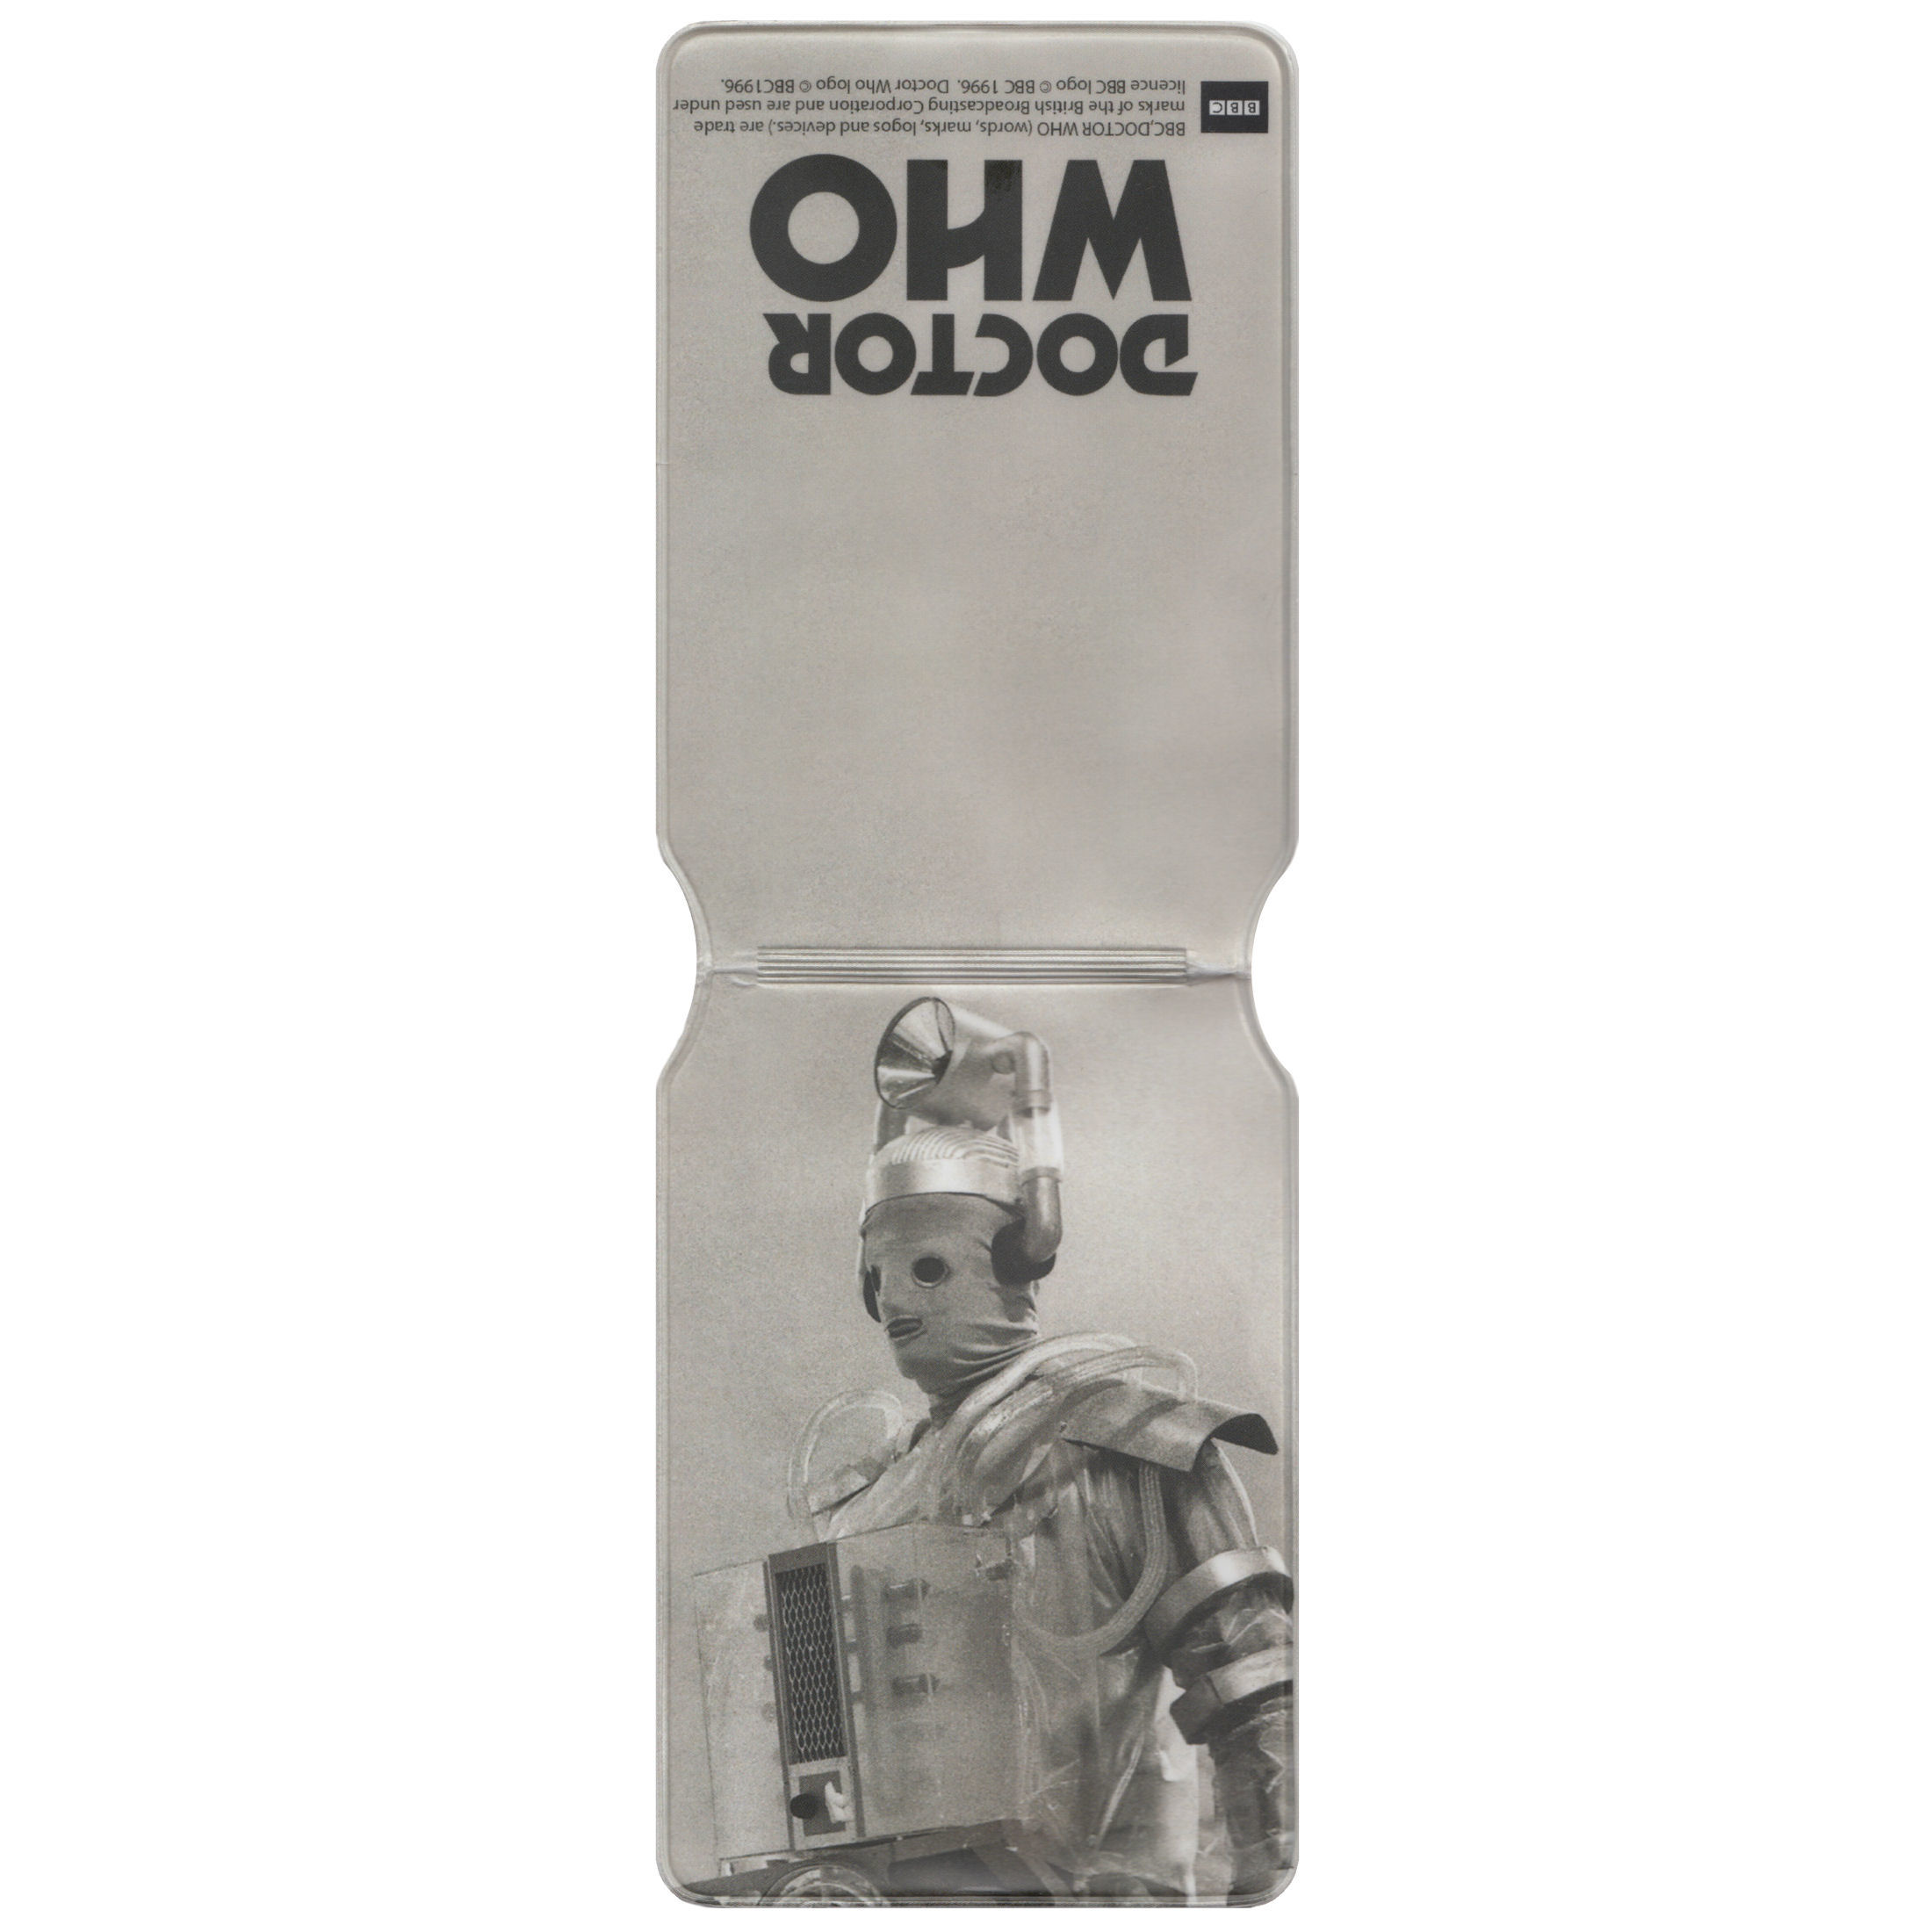 Doctor Who (Classic Retro Cyberman) Travel/Oyster Card Holder